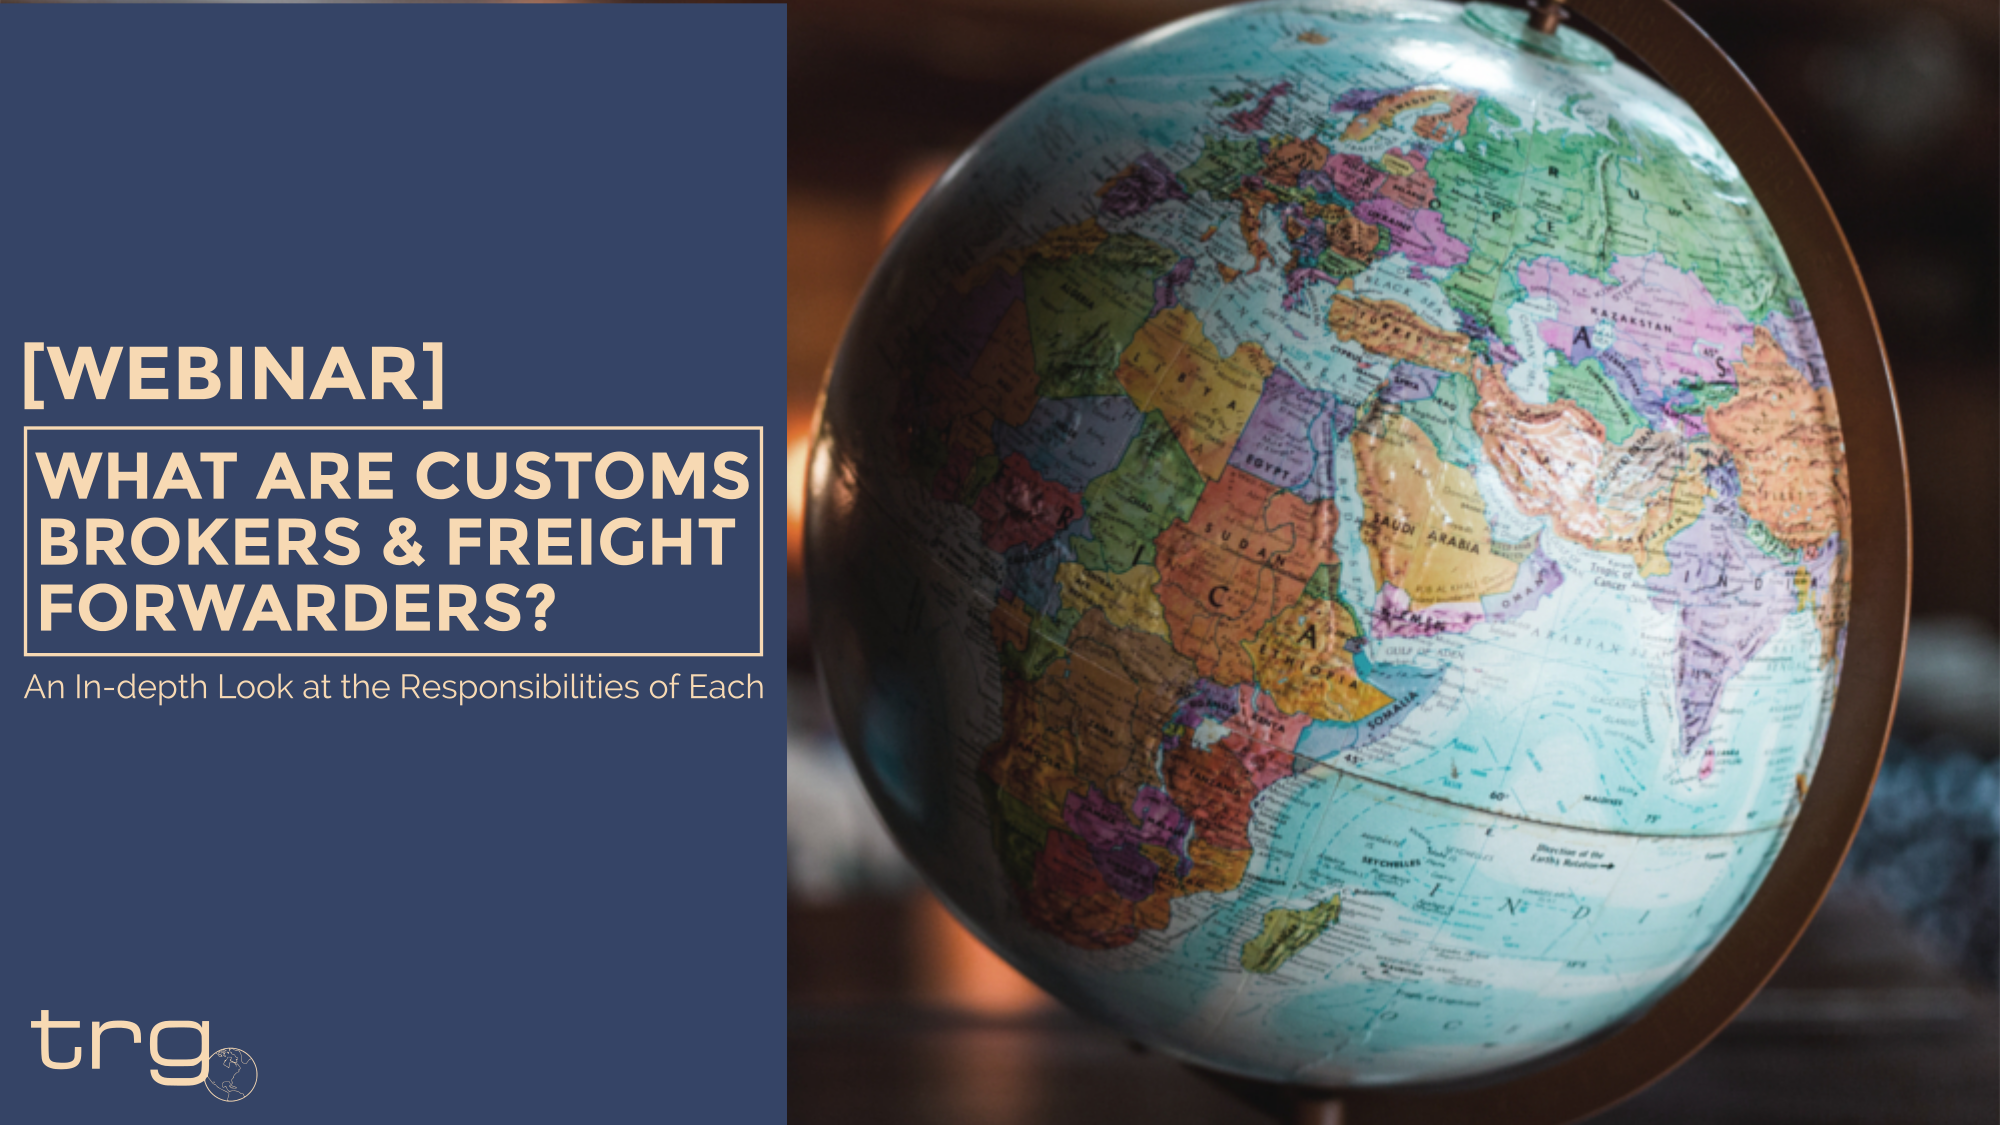 [Webinar] What Are Customs Brokers & Freight Forwarders?